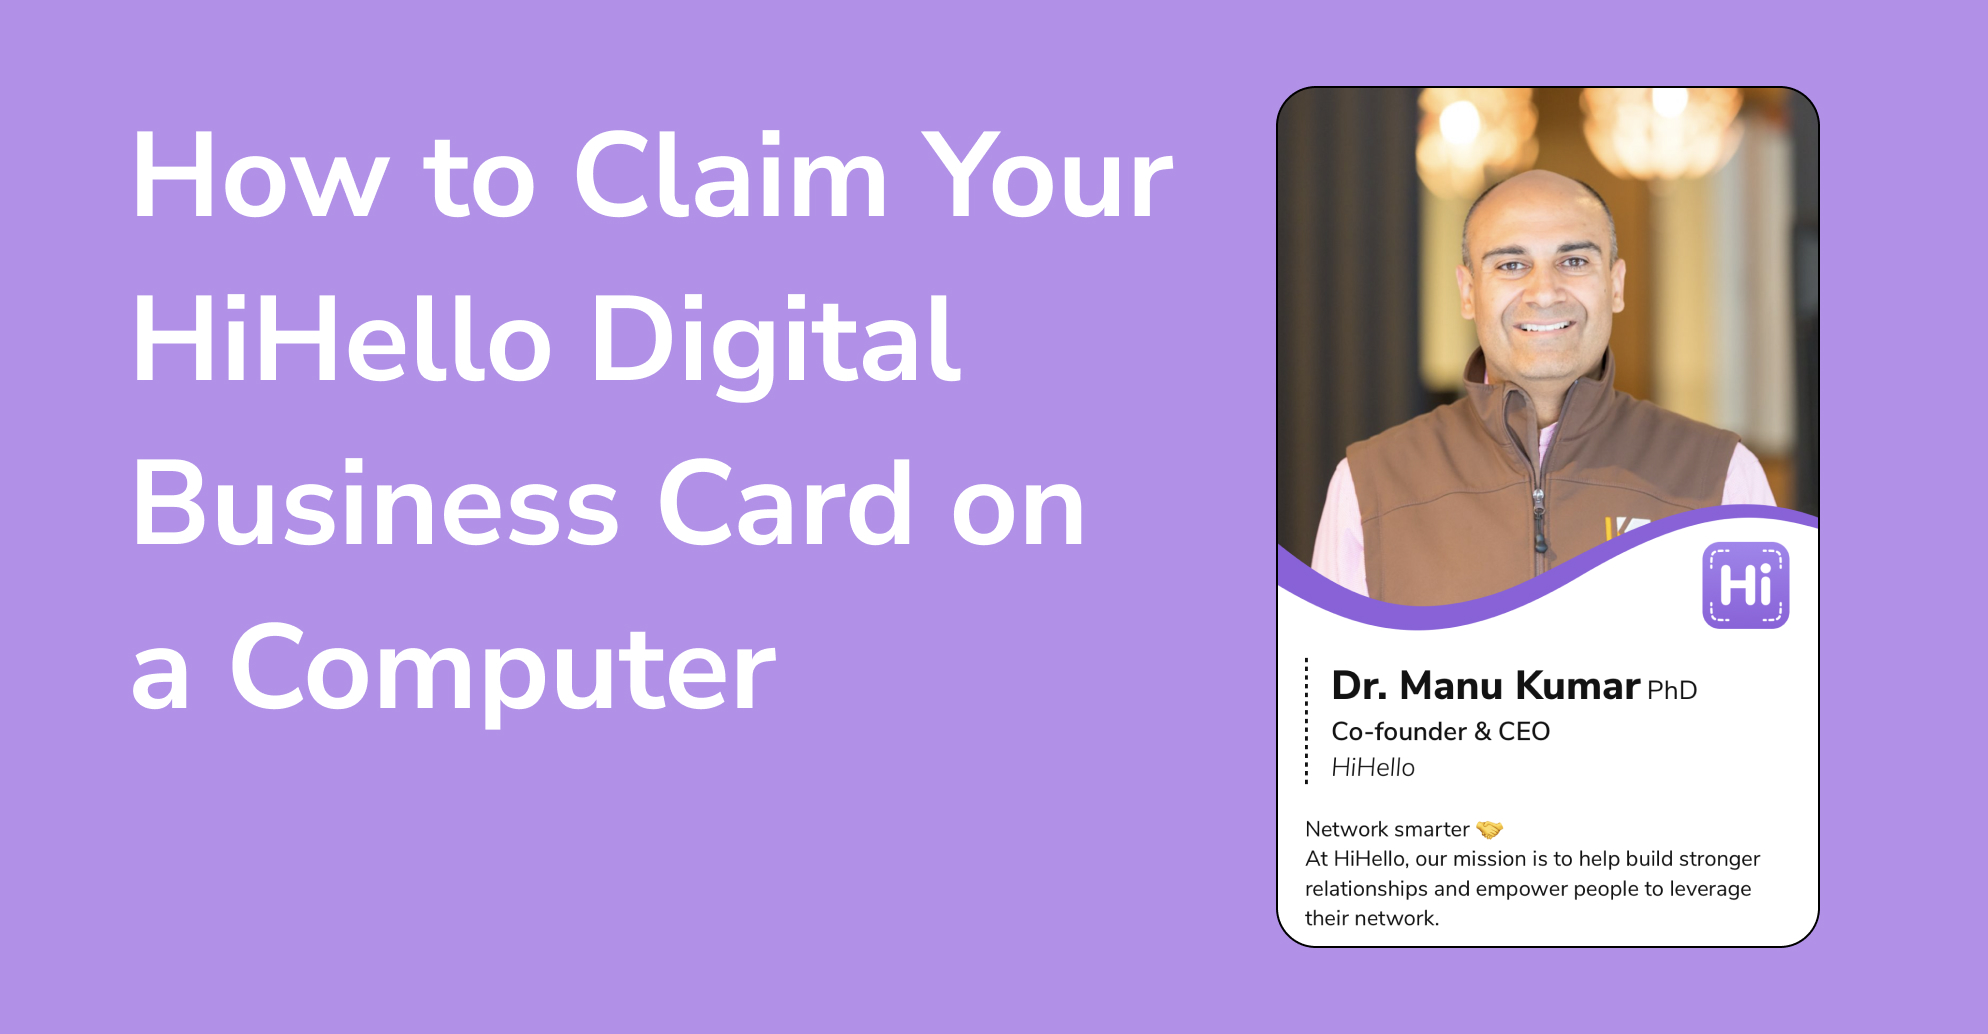 How to claim your digital business card on a computer